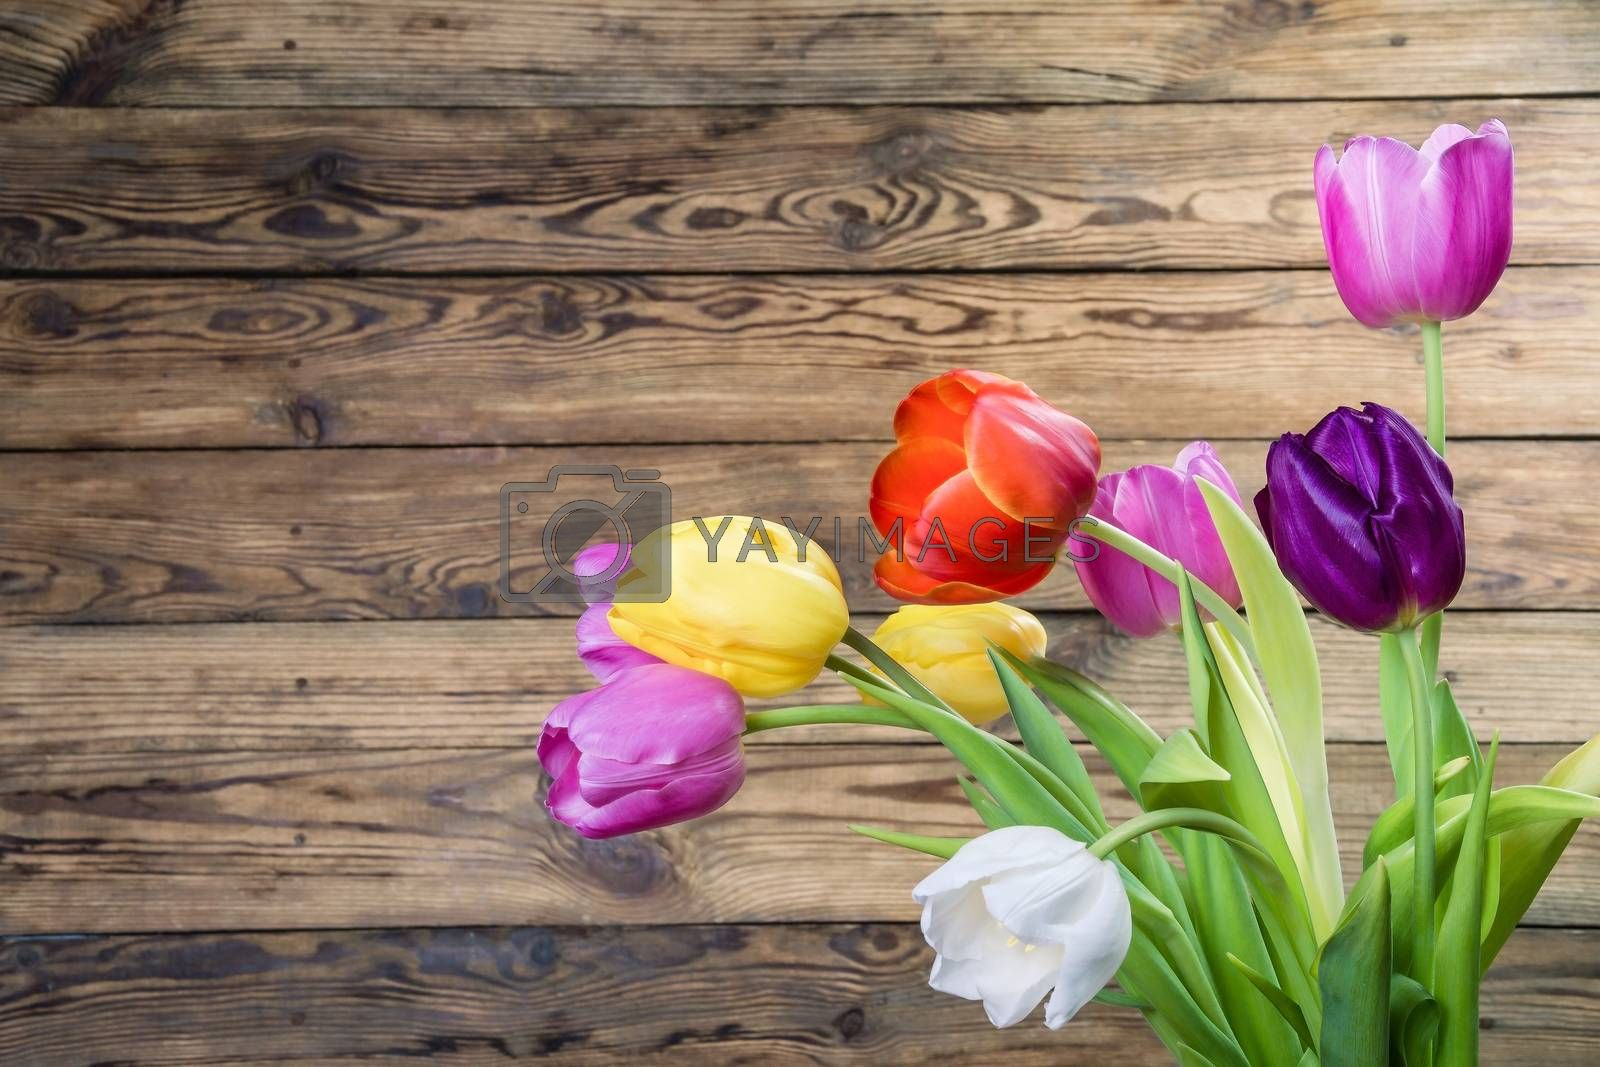 Rustic background with tulip flowers